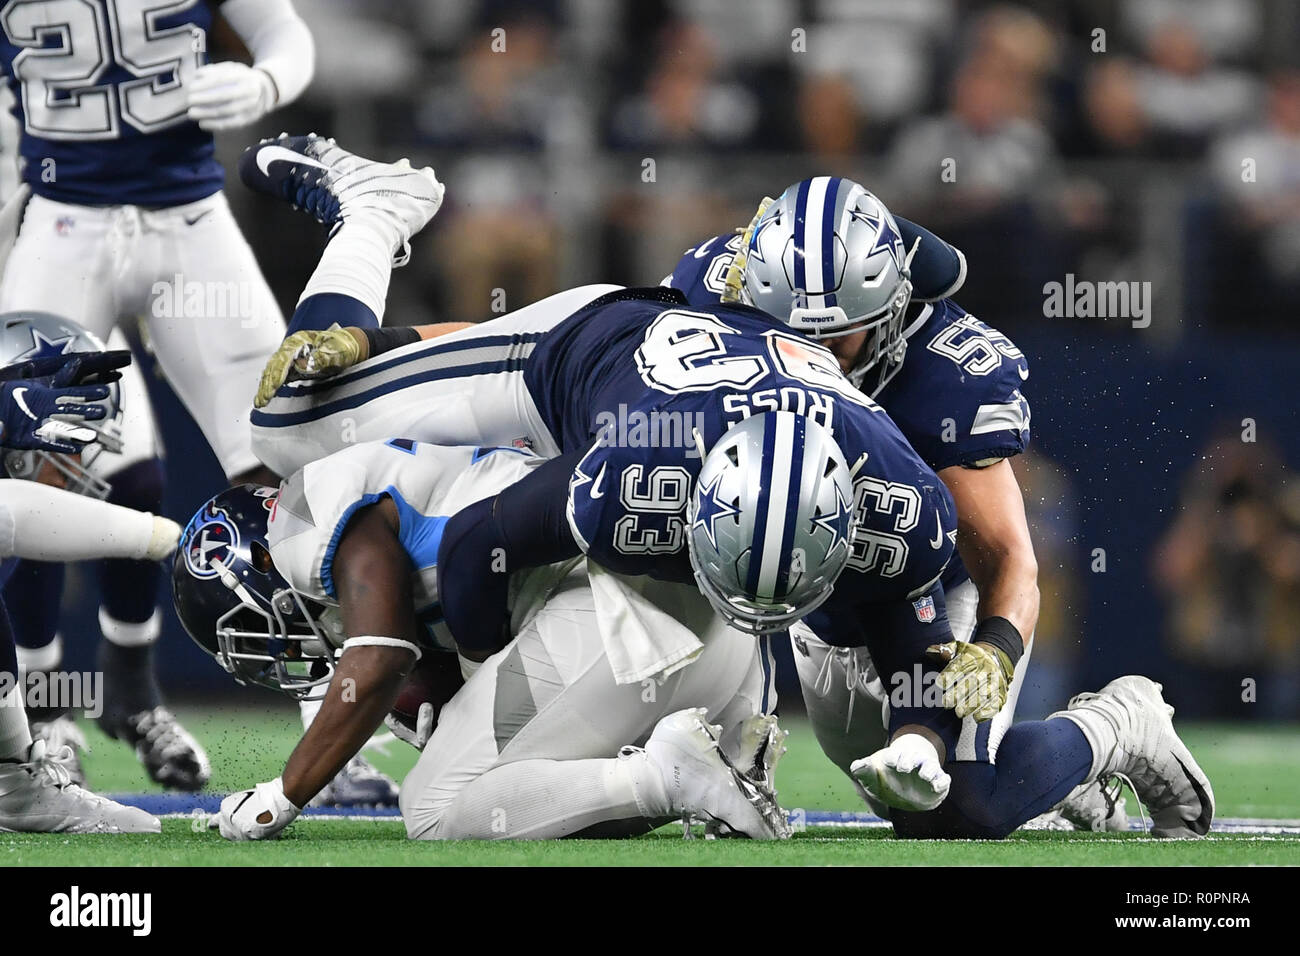 Arlington, Texas, USA. 5th Nov, 2018. Dallas Cowboys linebacker Leighton Vander Esch (55) and Dallas Cowboys defensive tackle Daniel Ross (93) tackles Tennessee Titans running back Dion Lewis (33) during the NFL football game between the Tennessee Titans and the Dallas Cowboys at AT&T Stadium in Arlington, Texas. Shane Roper/Cal Sport Media/Alamy Live News - Stock Image